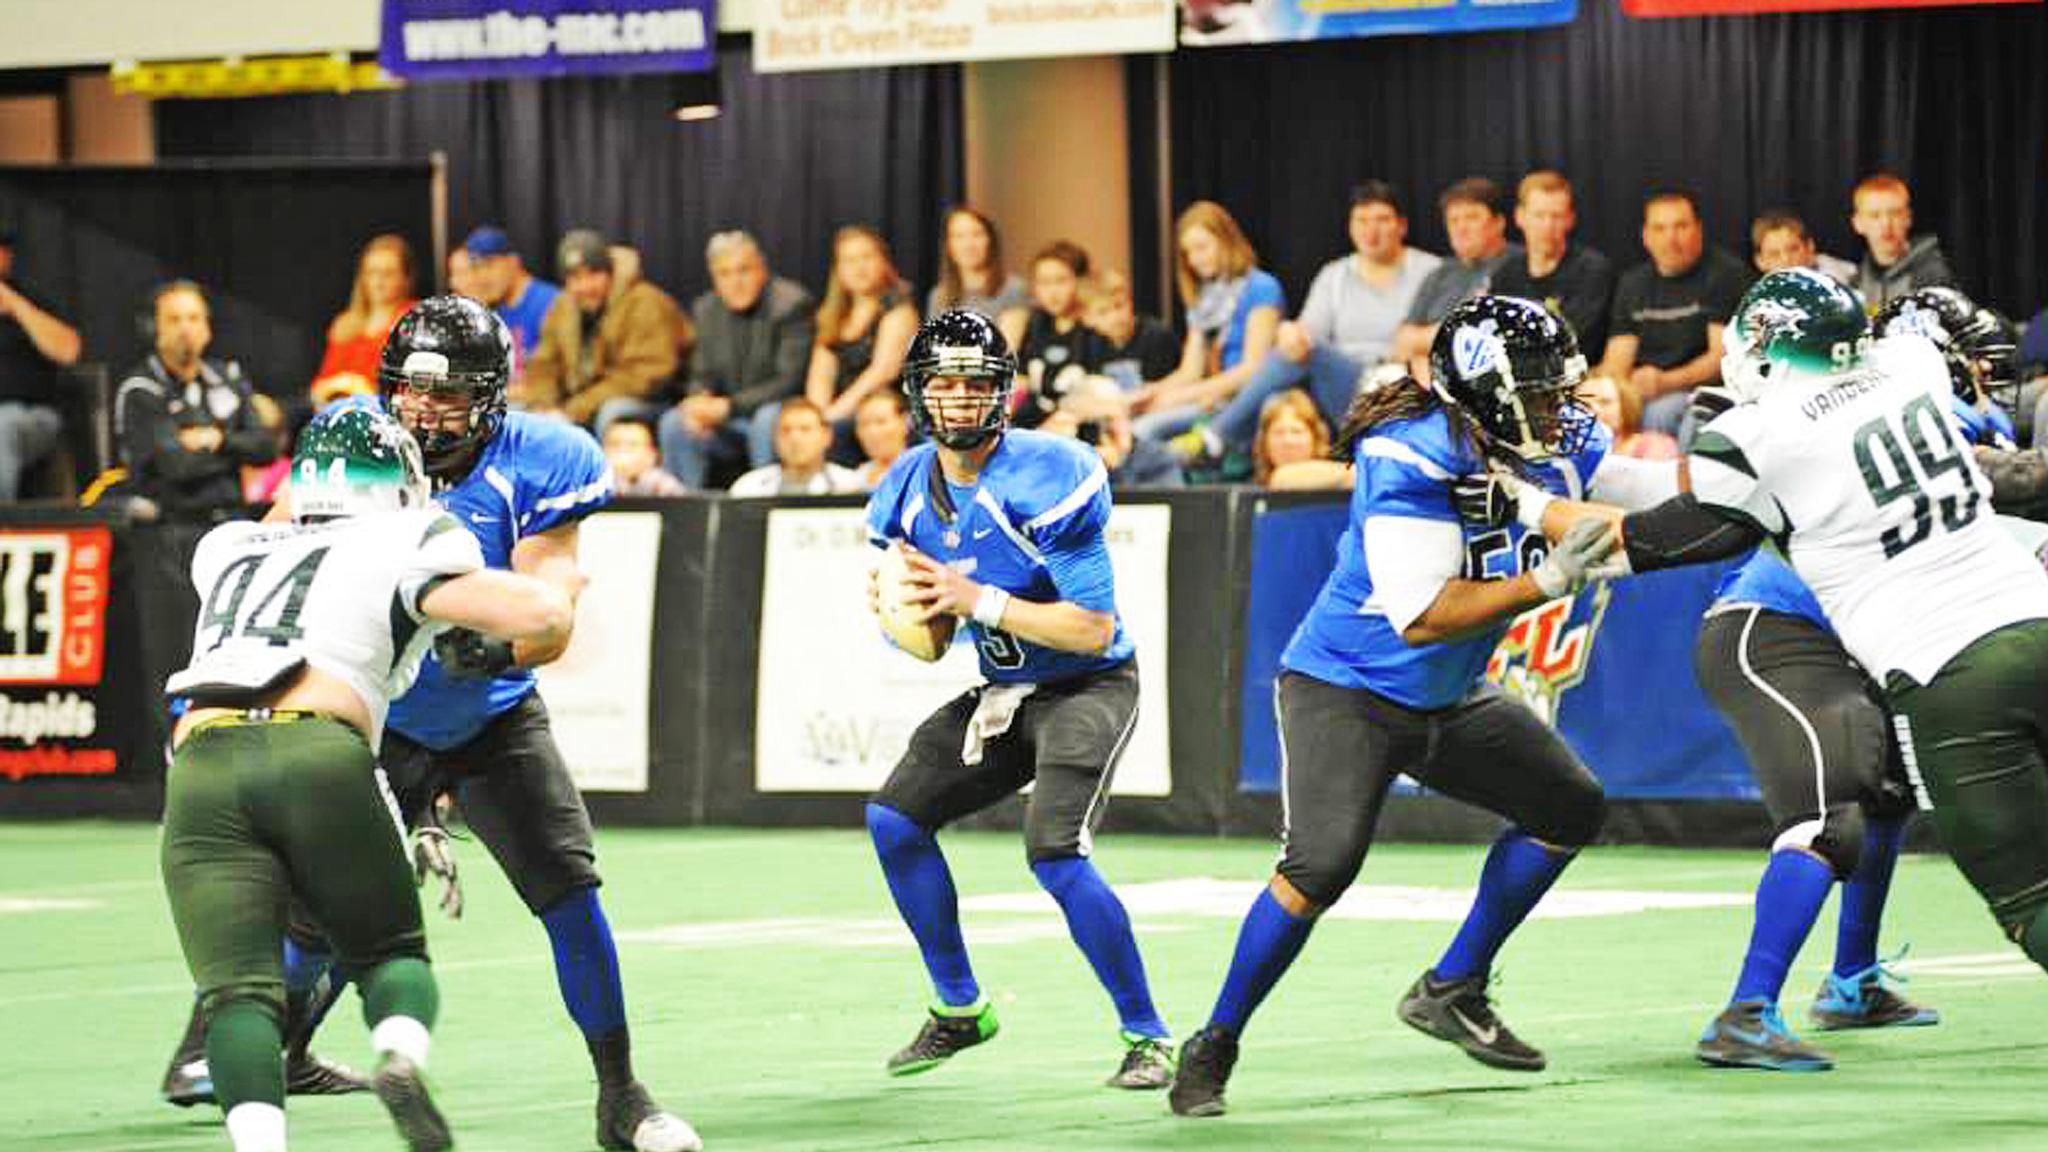 Cedar Rapids Titans vs. Nebraska Danger